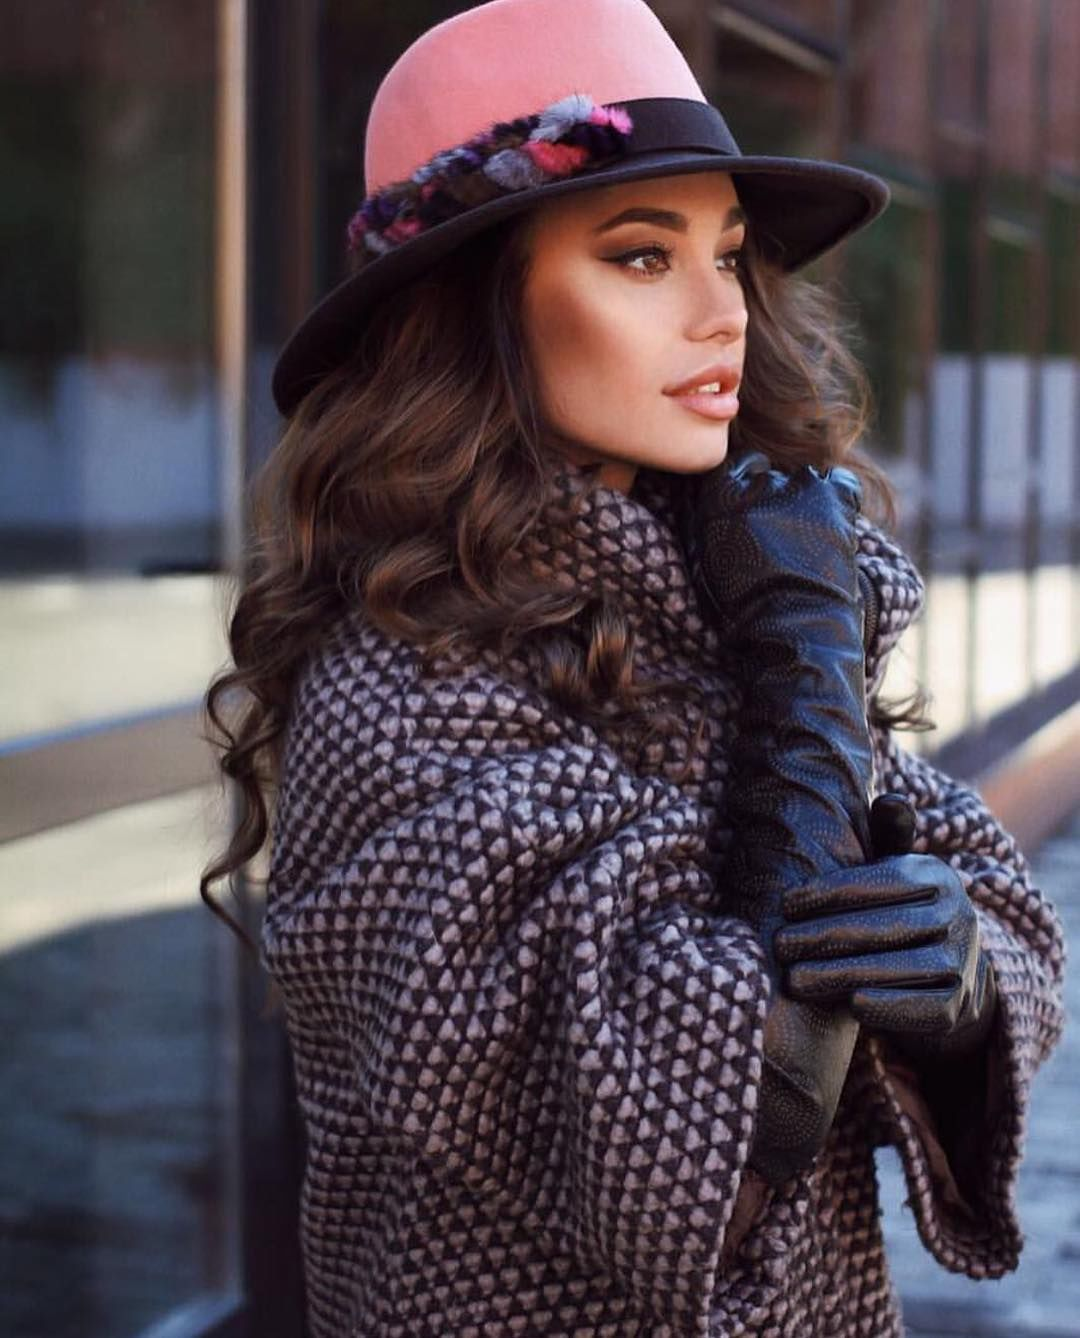 322103-Pink-Hat-And-Printed-Coat-With-Leather-Gloves.jpg